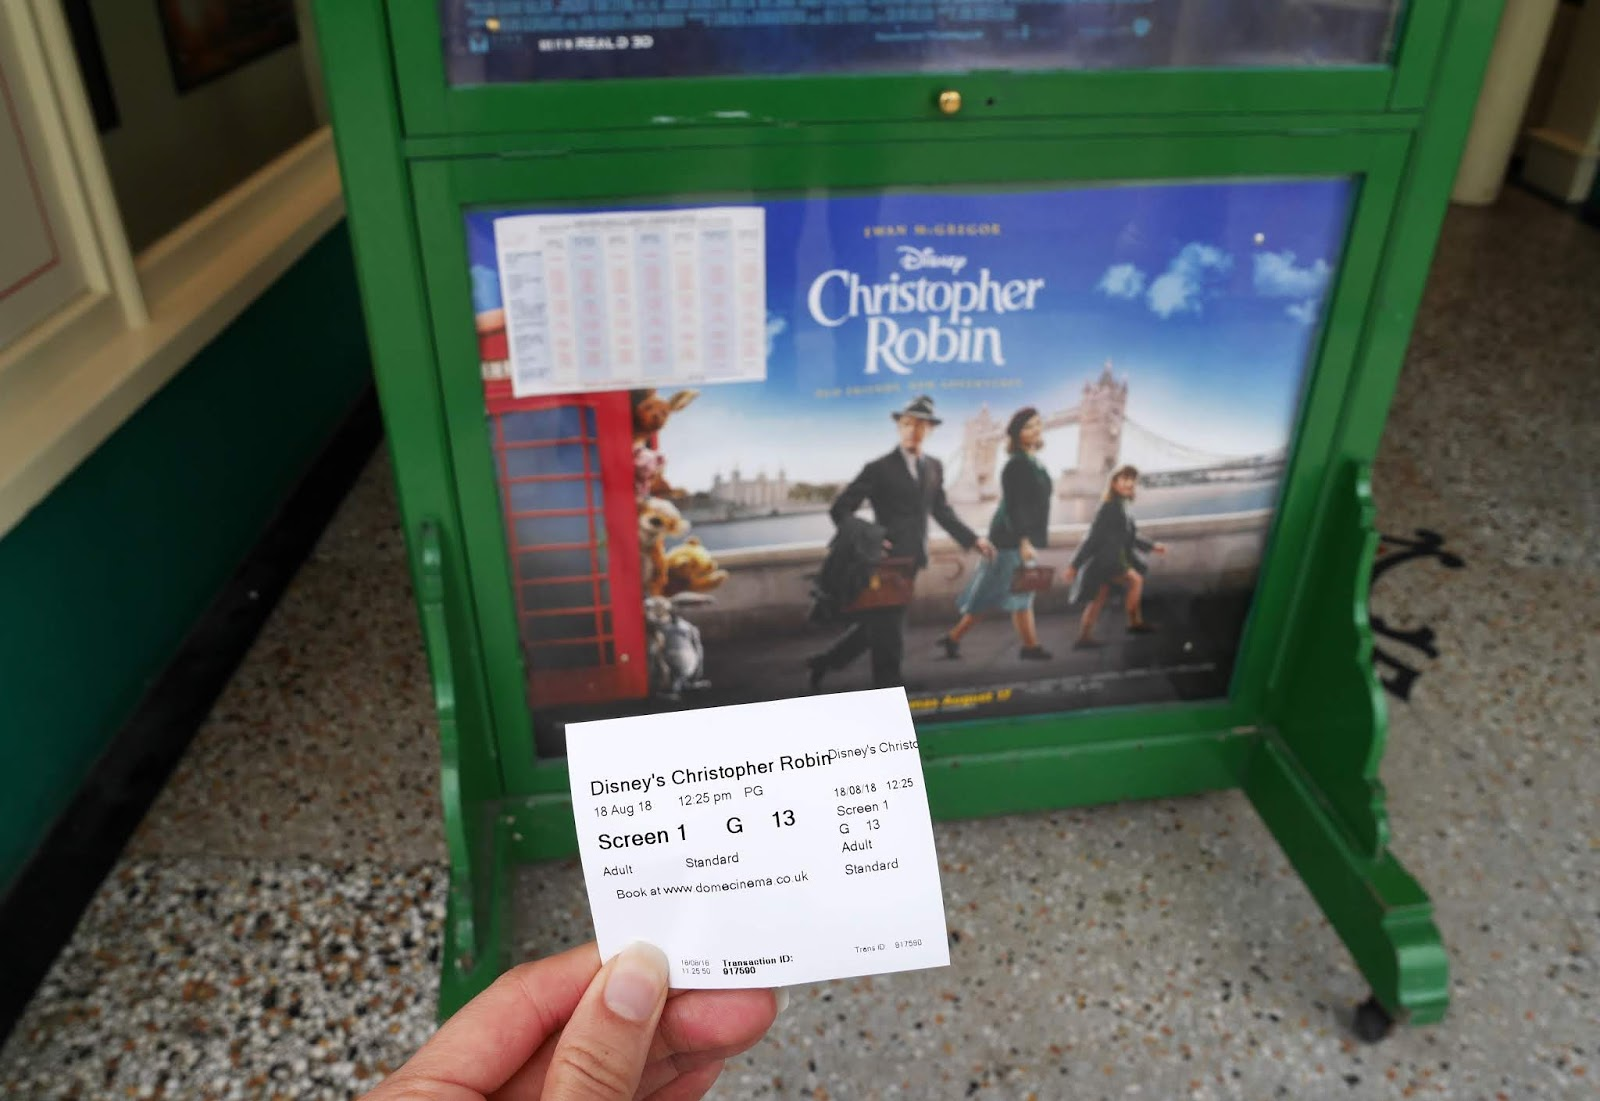 Holding my Christopher Robin cinema ticket outside The Dome Cinema in Worthing